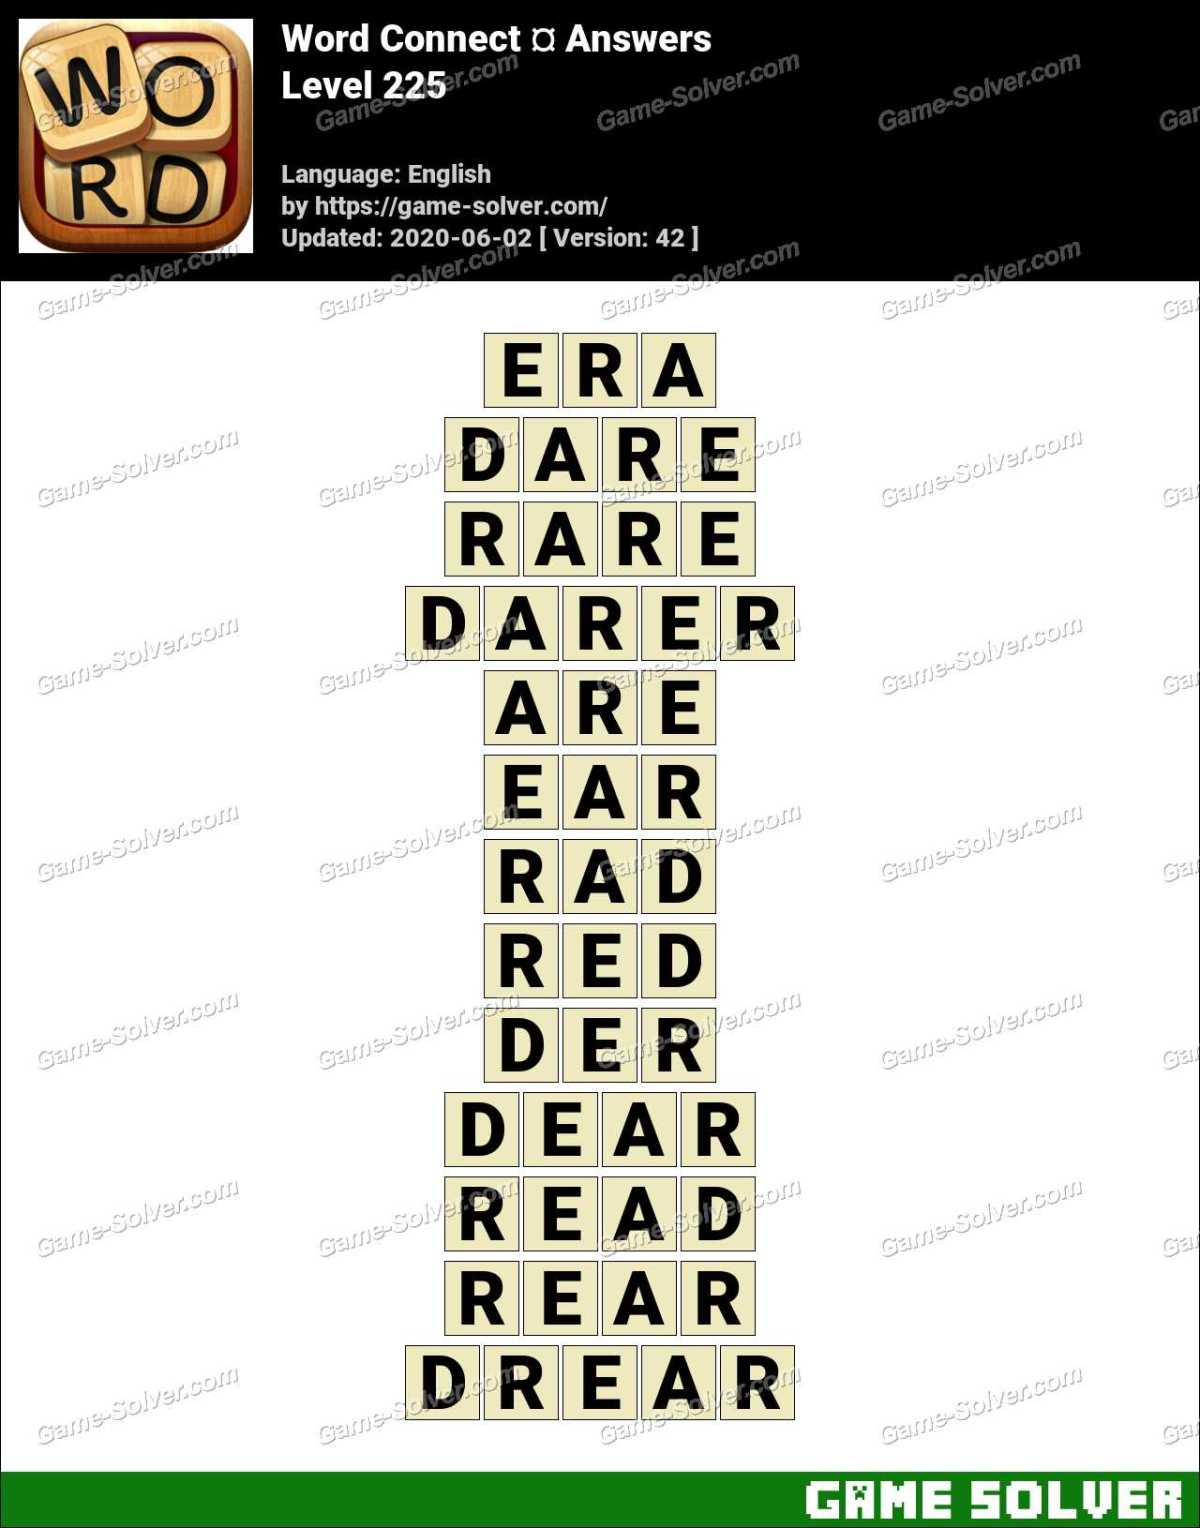 Word Connect Level 225 Answers